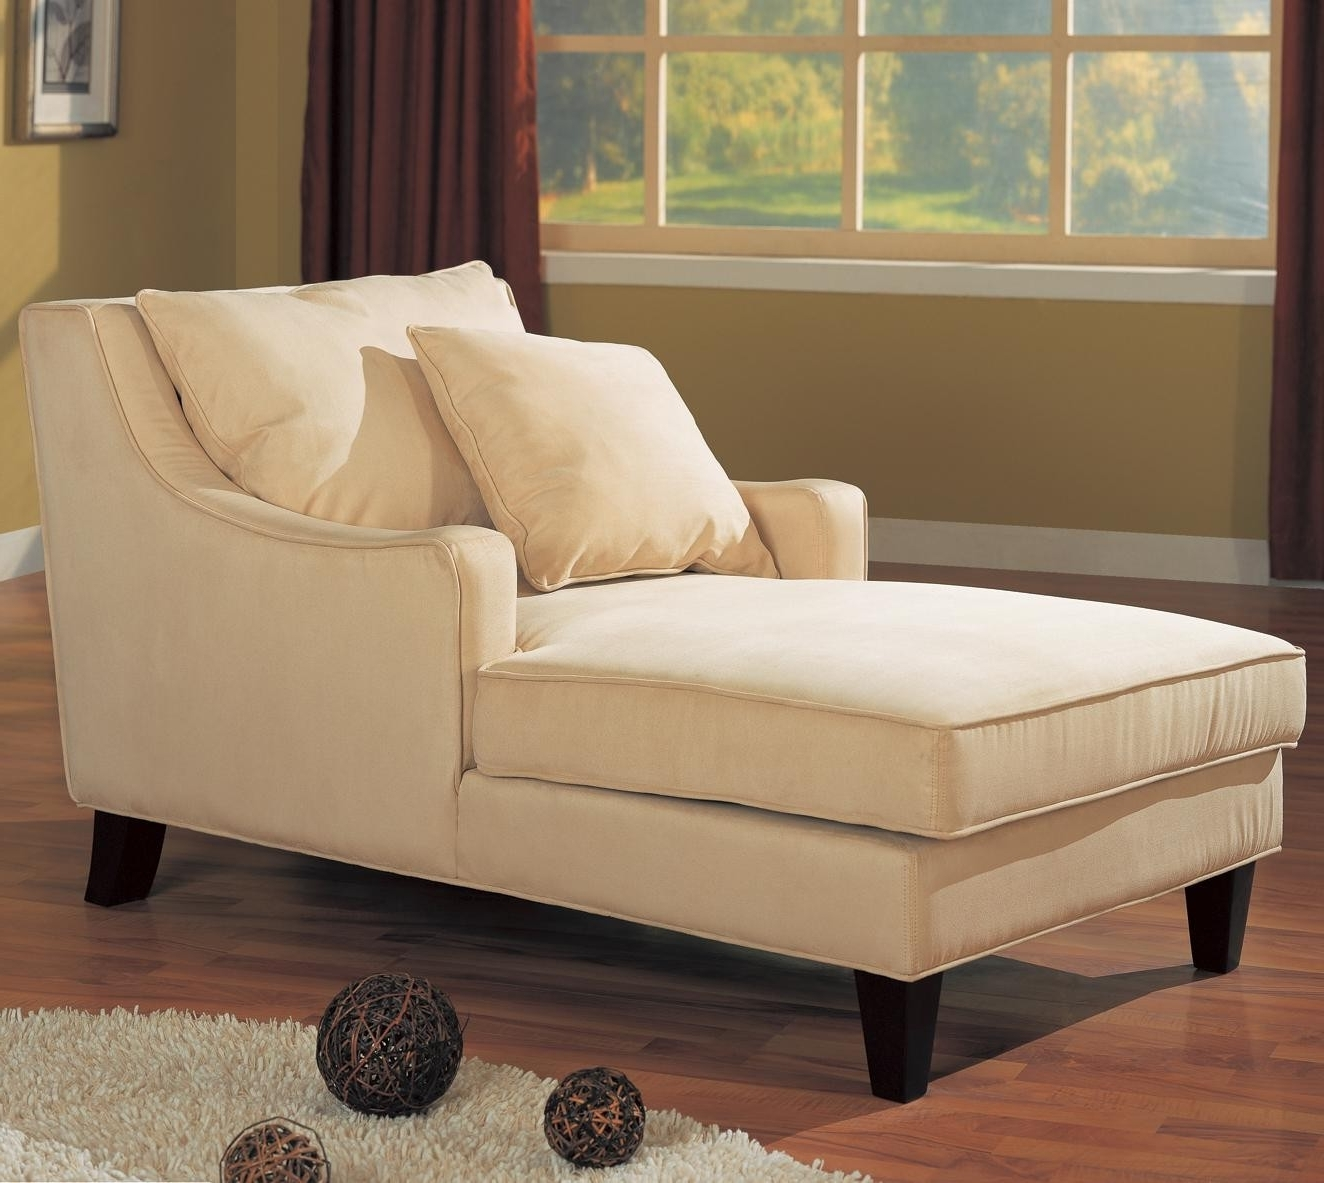 Chaises With Arms Inside Well Known Accent Seating Microfiber Chaise Lounge Lowest Price – Sofa (View 5 of 15)